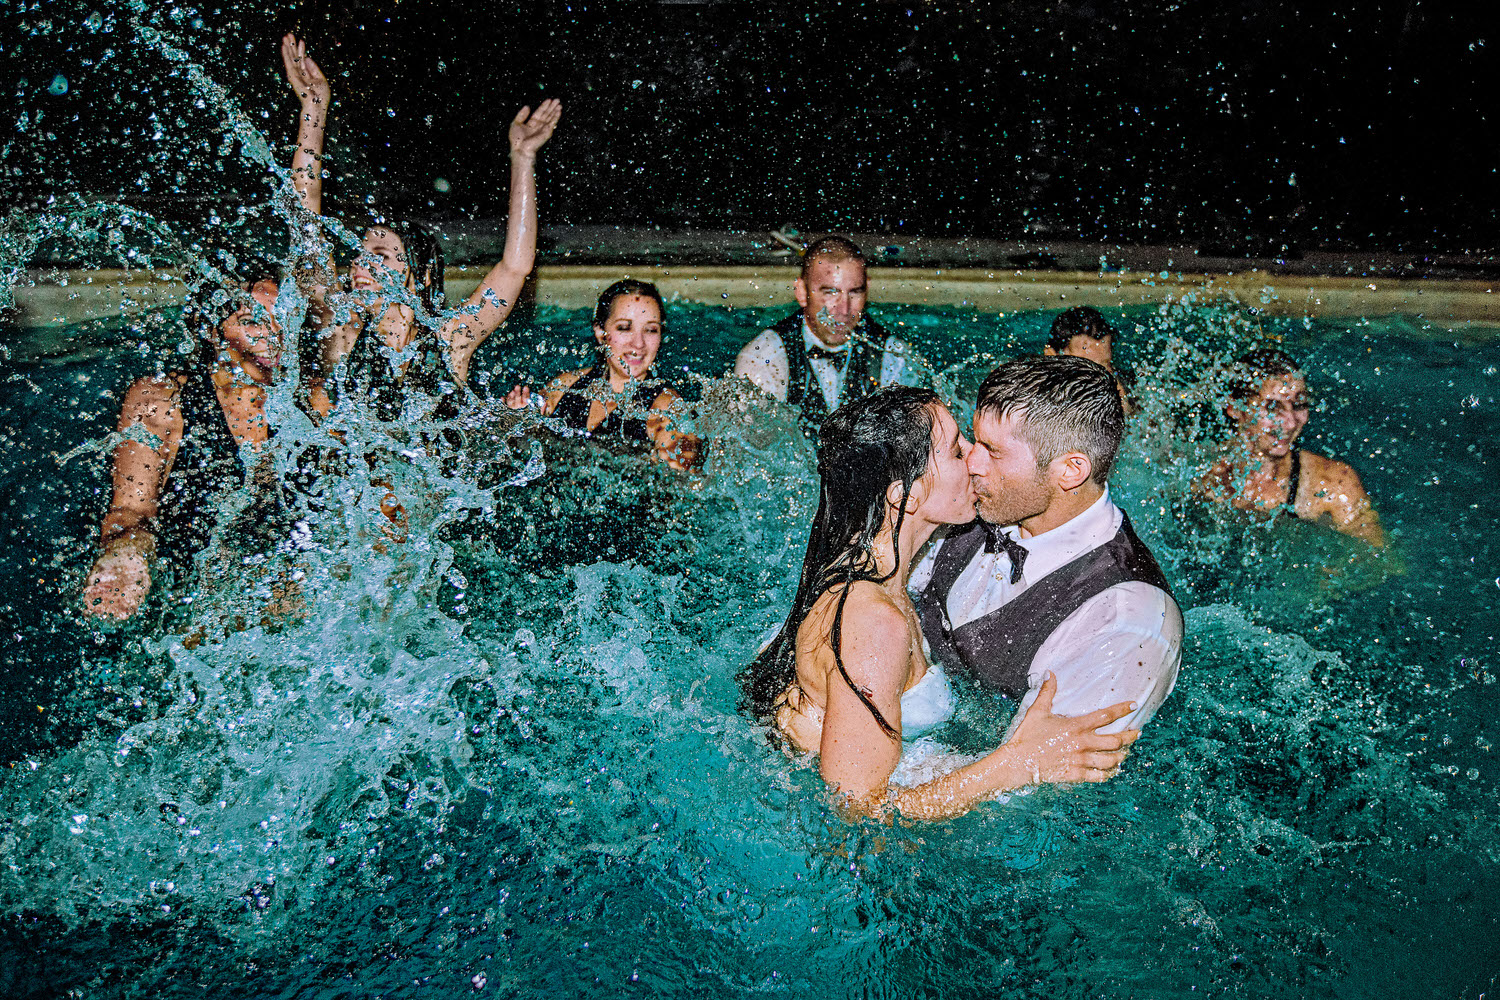 Being at the right place at the right time in Bozeman Montana has its perks. This wedding party went overboard resulting in some of the most unique photographs.